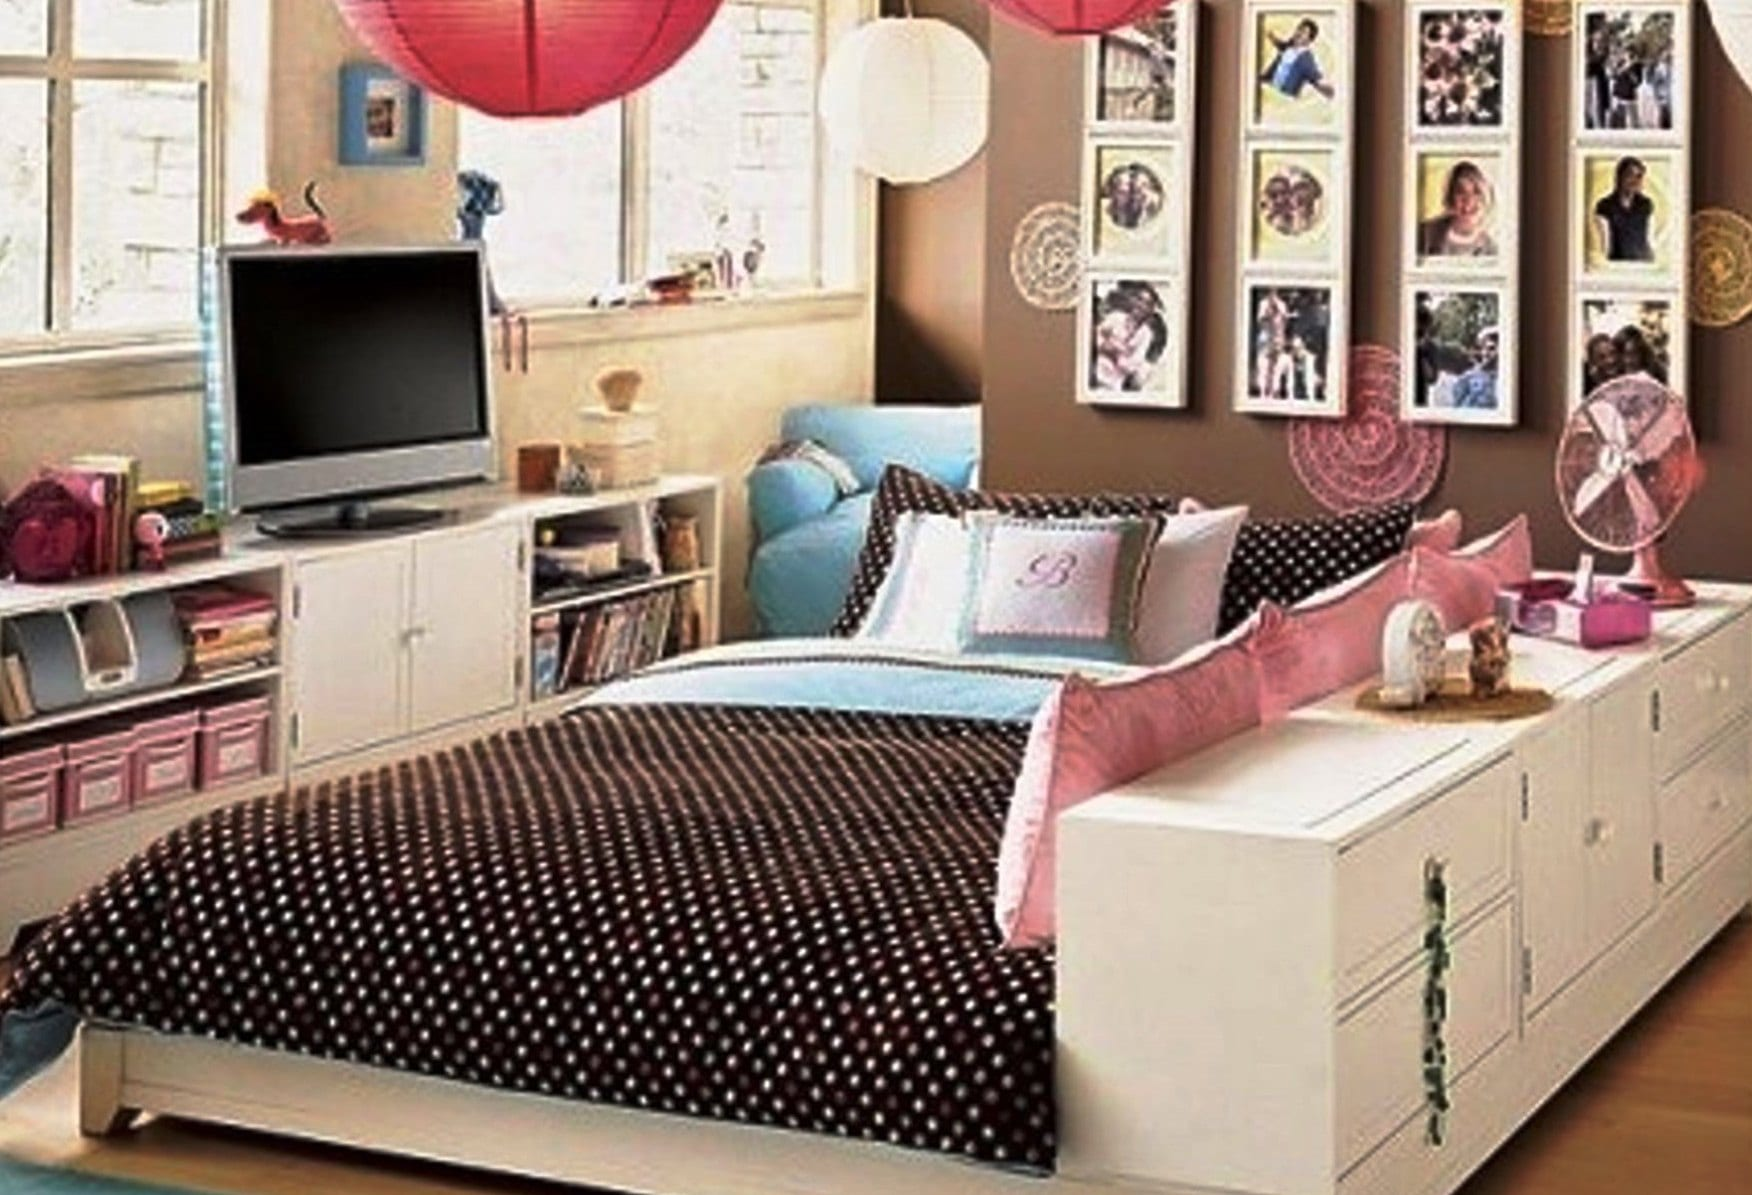 coole deko ideen und farbgestaltung f rs schlafzimmer. Black Bedroom Furniture Sets. Home Design Ideas